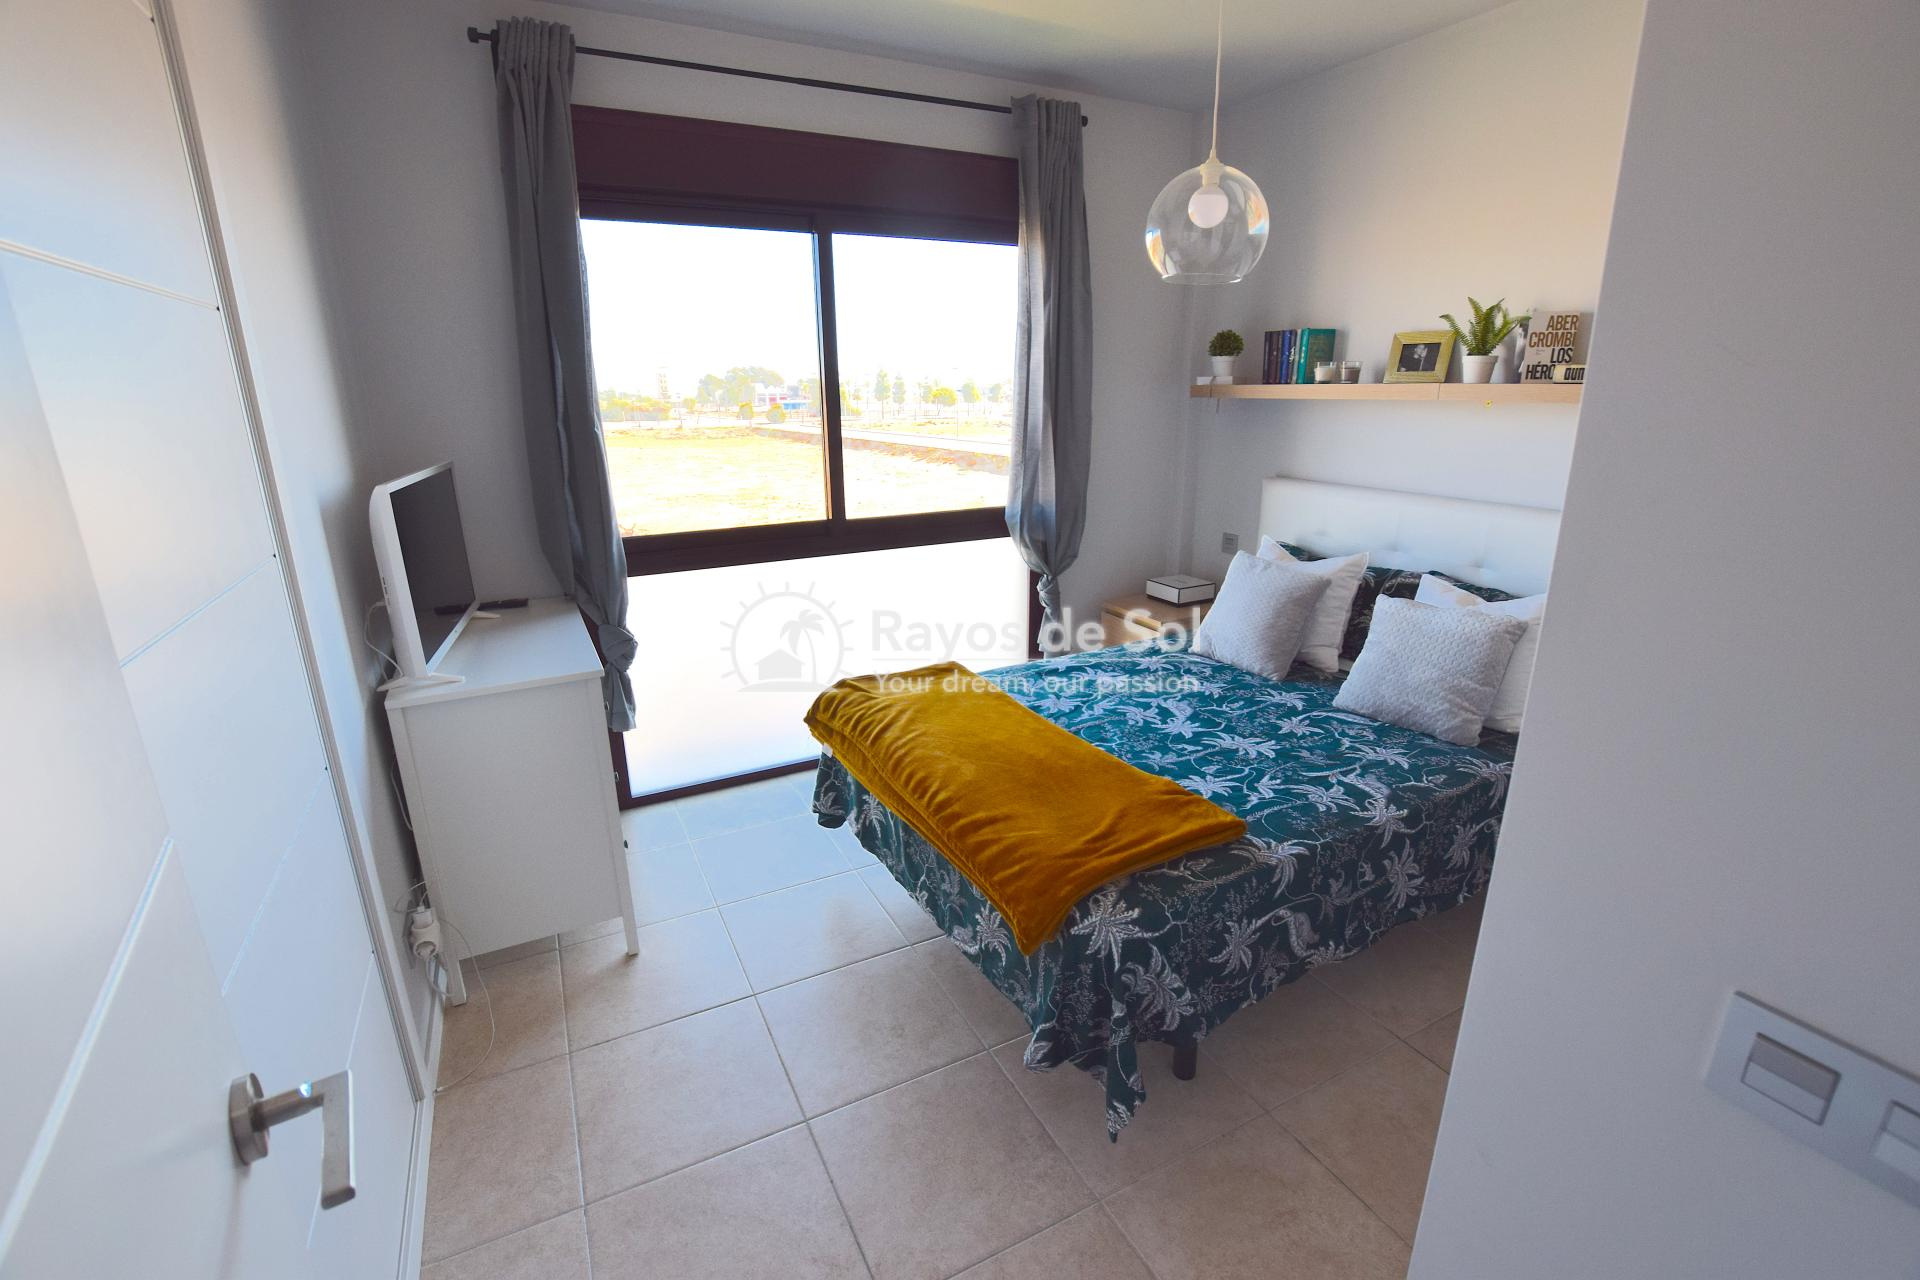 Penthouse with stunning views  in Los Alcazares, Costa Cálida (LARE0003) - 12